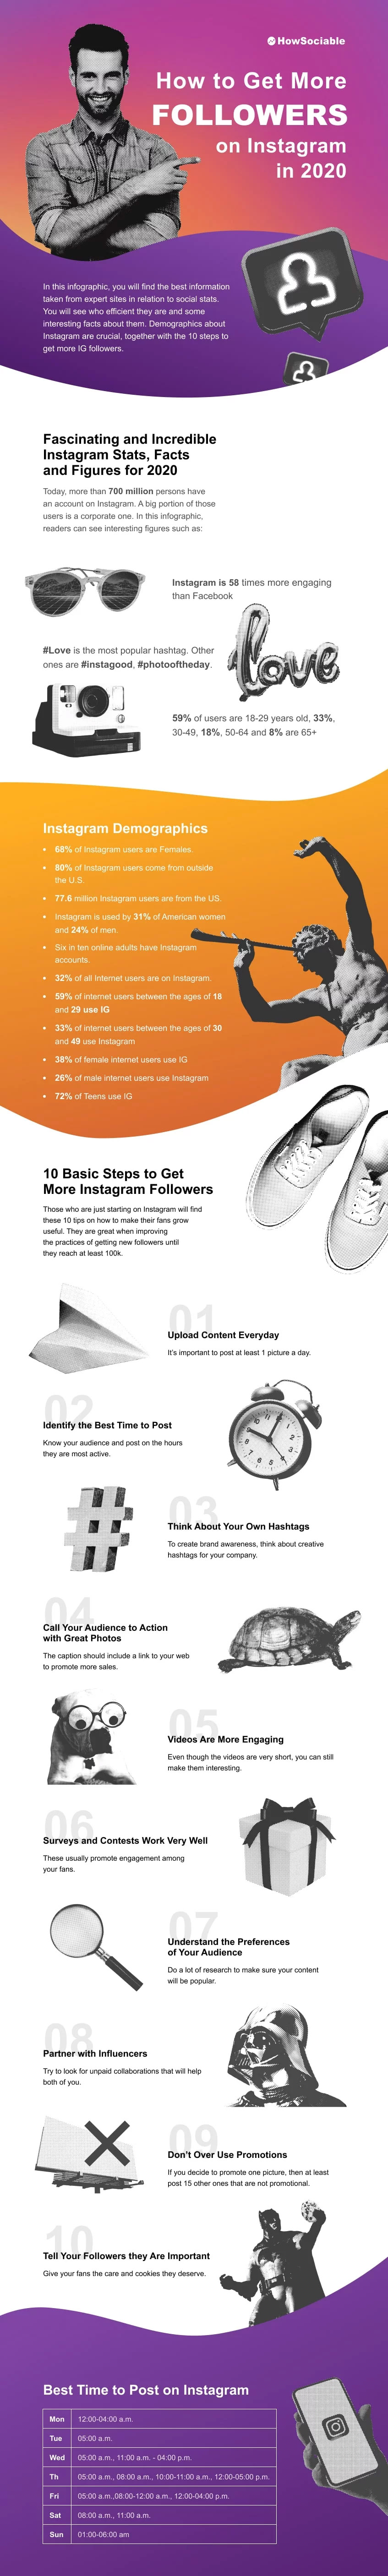 10 Simple Ways To Increase Your Instagram Followers - Infographic